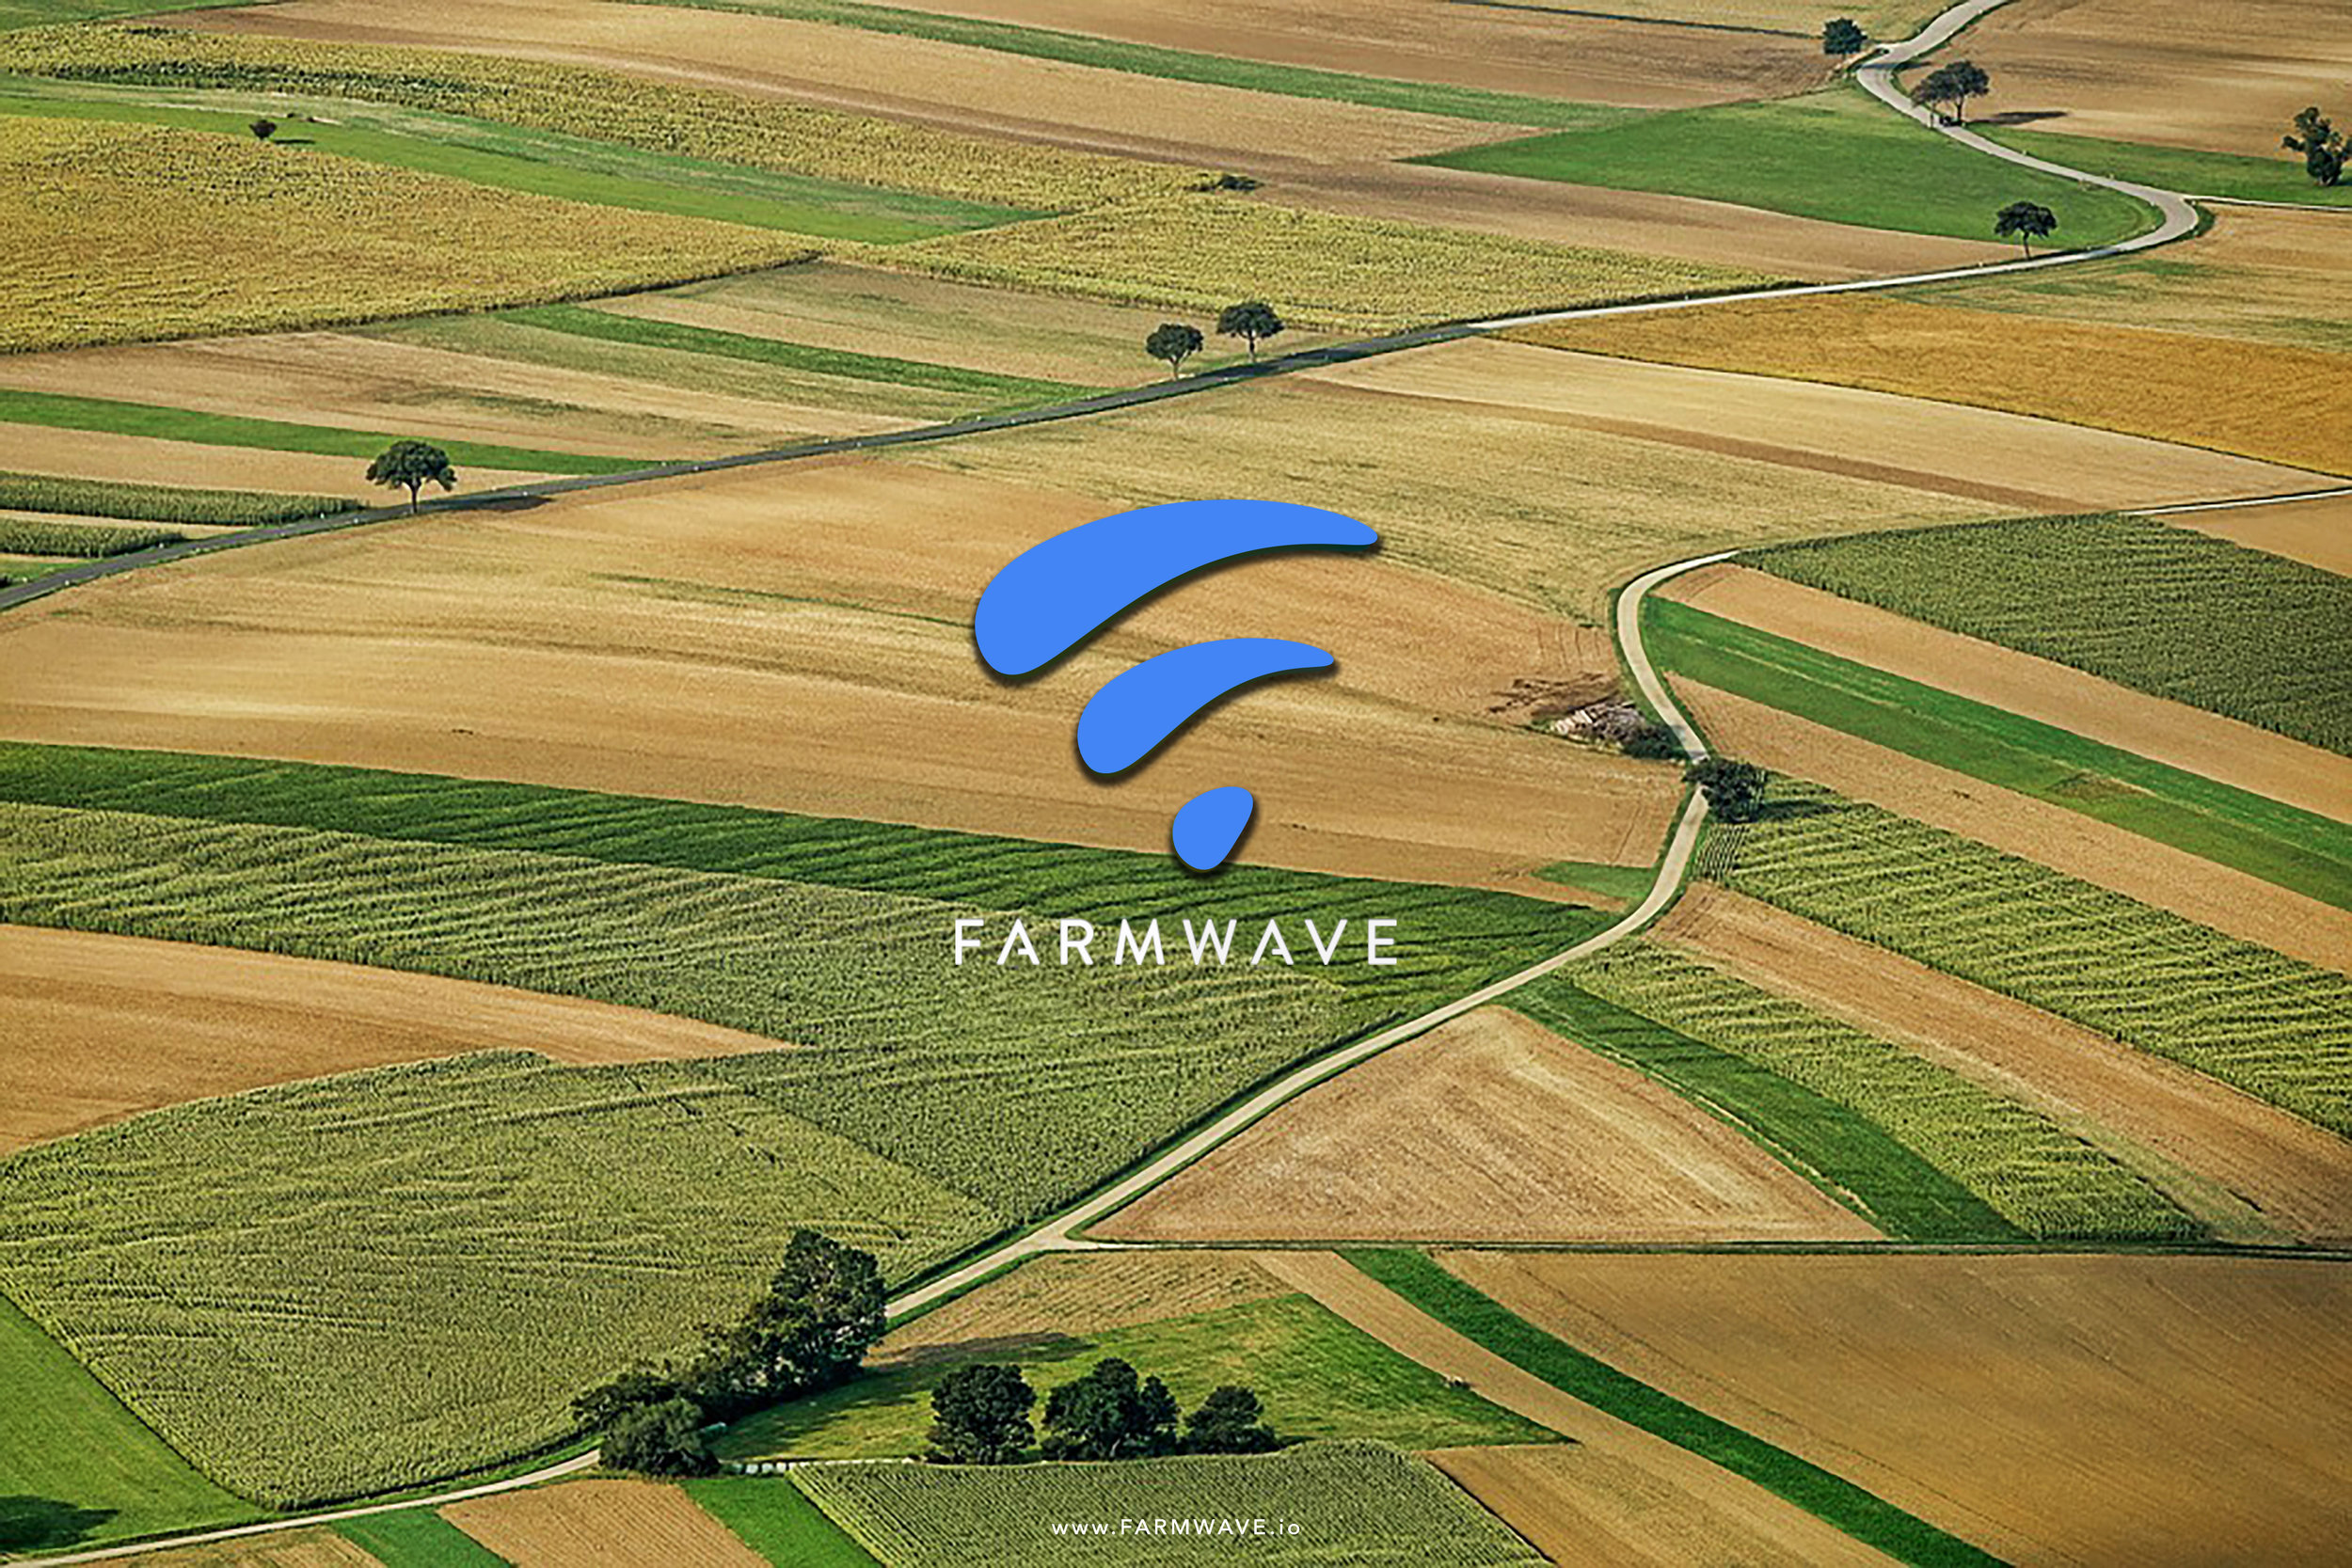 A drone shot of a fields with the Farmwave's logo dropped on top.